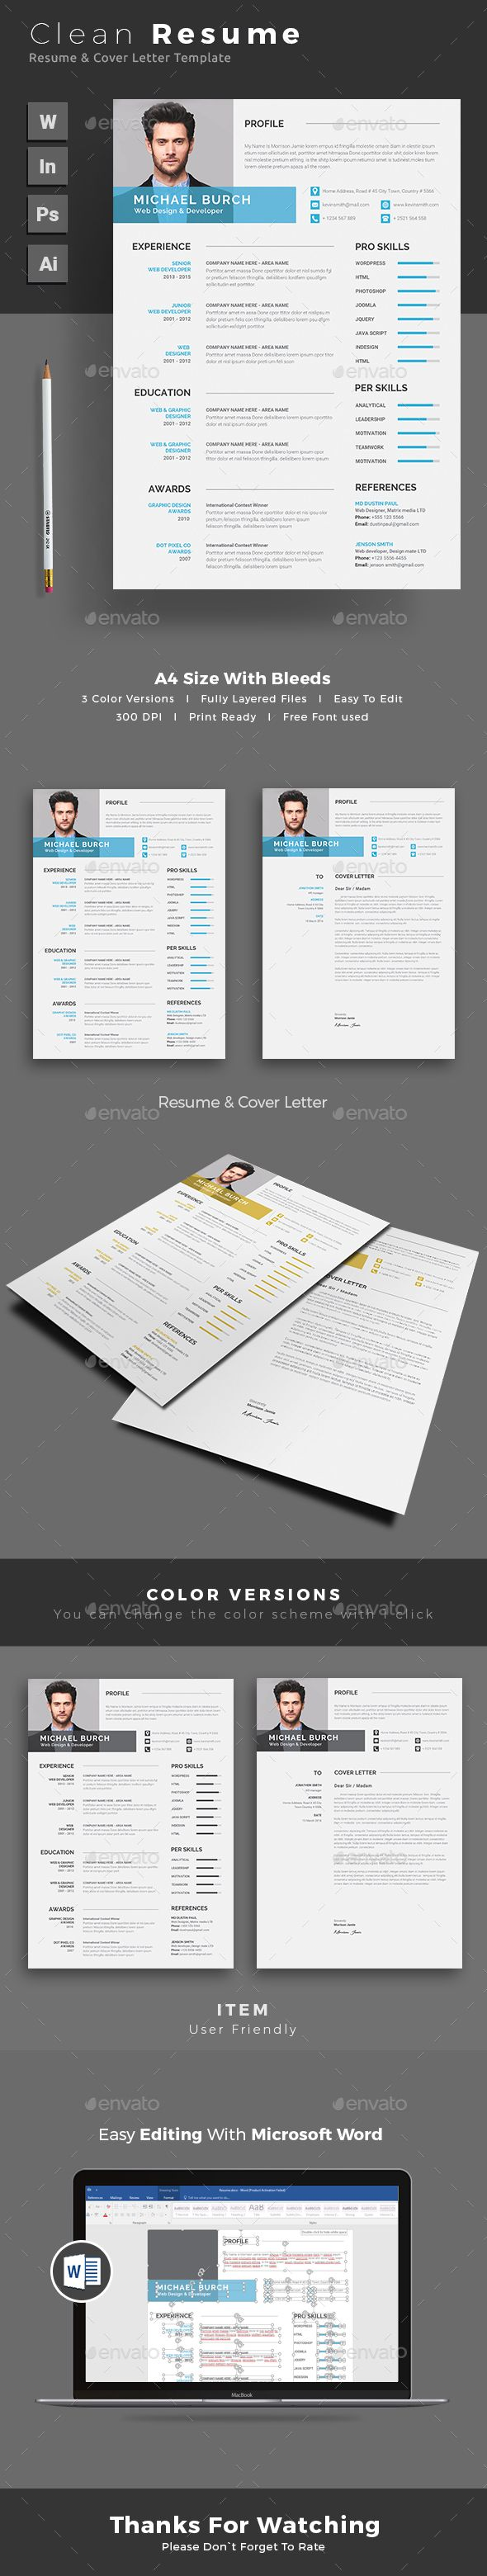 Resume 909 best Modern Resume Templates images